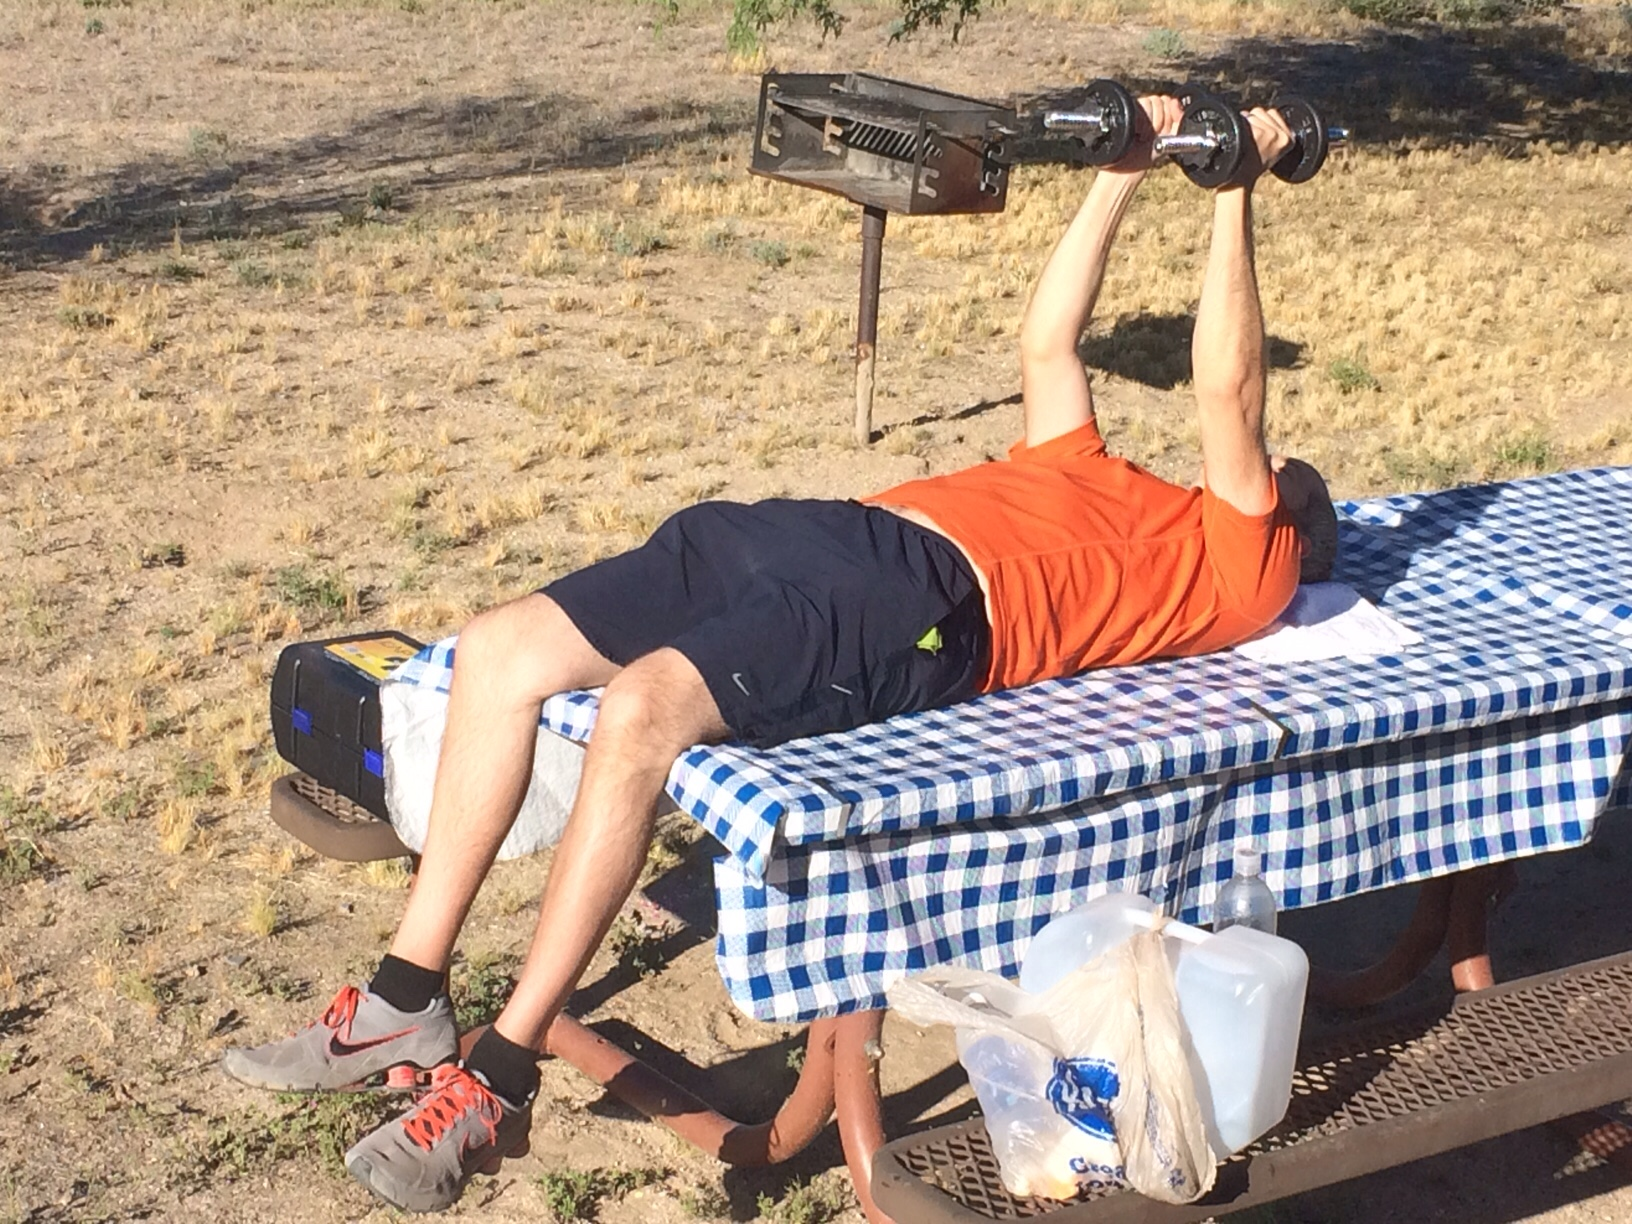 English hubby exercising on picnic table